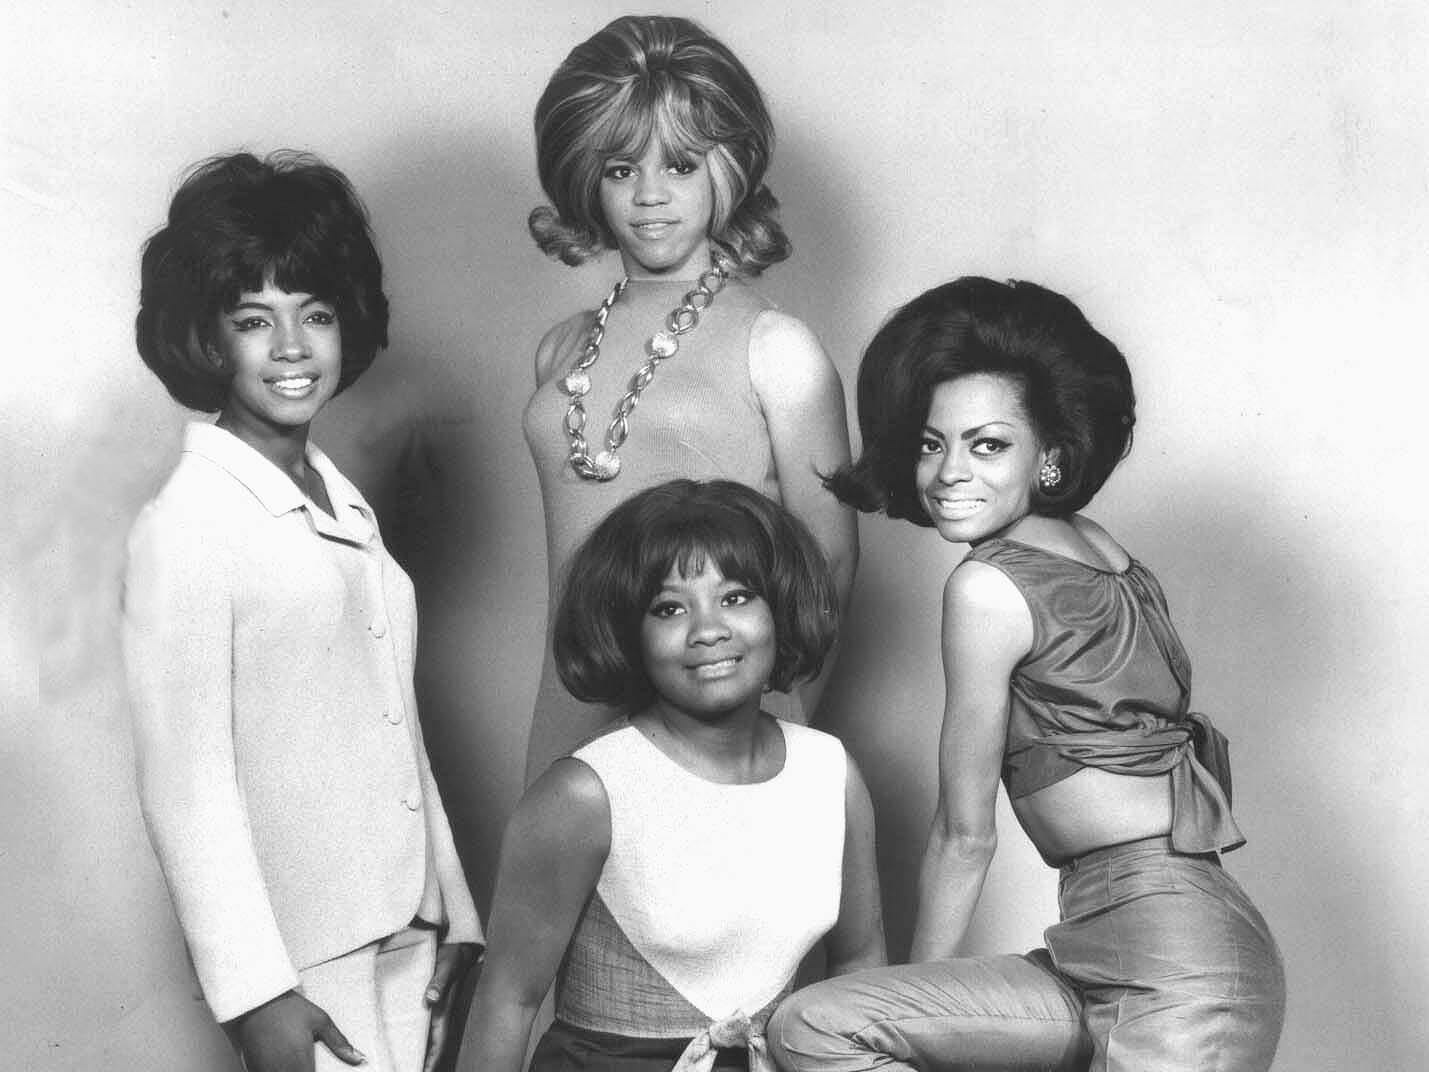 Barbara Martin, seated, replaced Betty McGlown in 1960, a year before the group was signed by Motown and renamed the Supremes. When she left the act in 1962, the group continued as a trio.